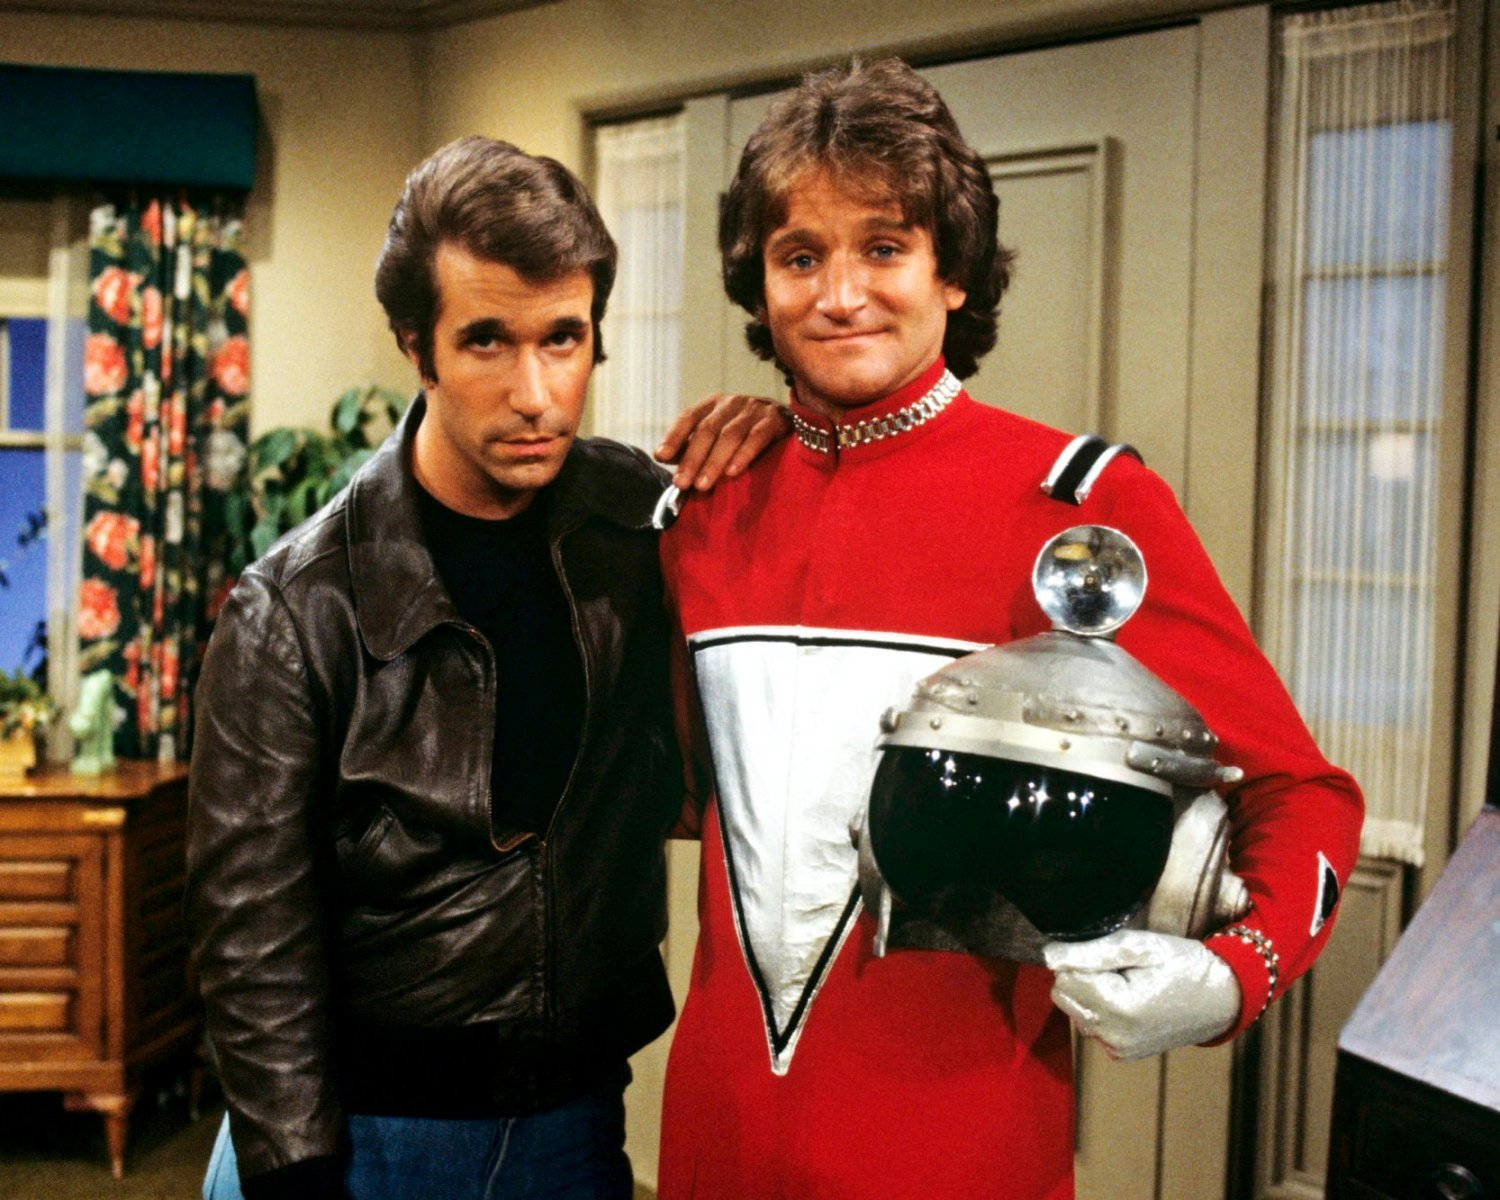 HENRY WINKLER w/ GUEST ROBIN WILLIAMS 'HAPPY DAYS' 8X10 PUBLICITY PHOTO (BB-931)